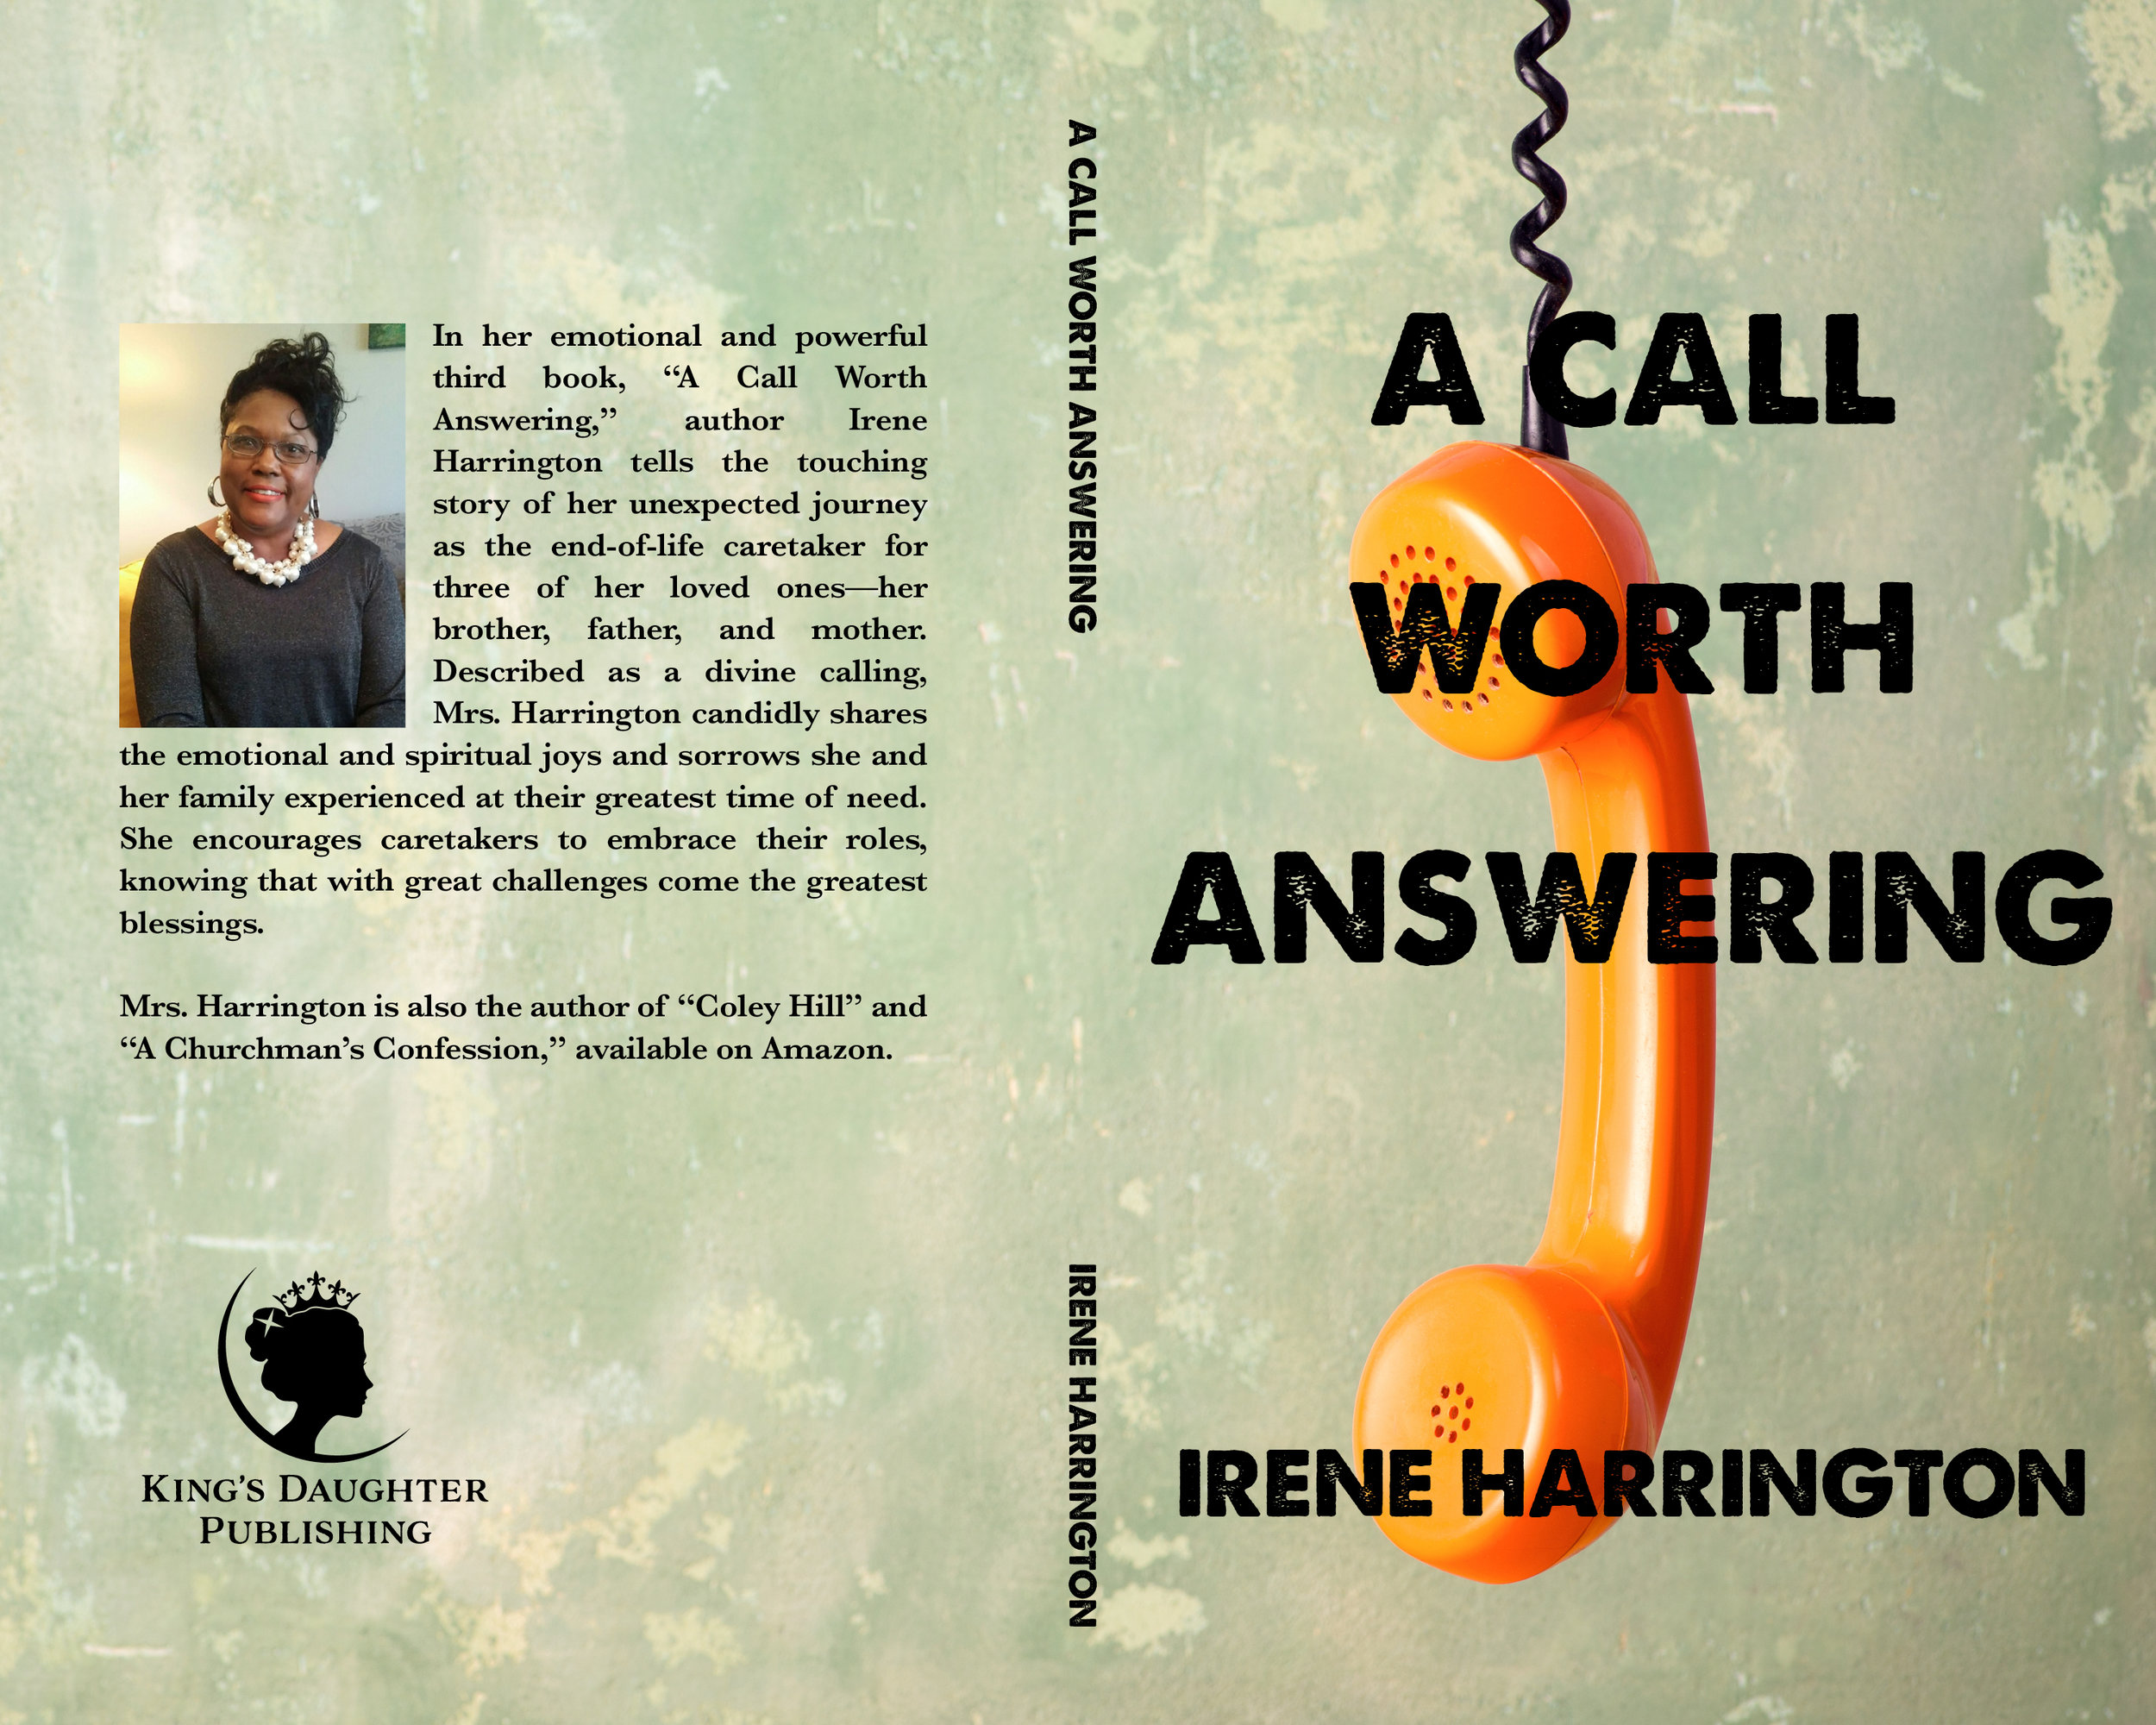 COVER - Call Worth answering.jpg